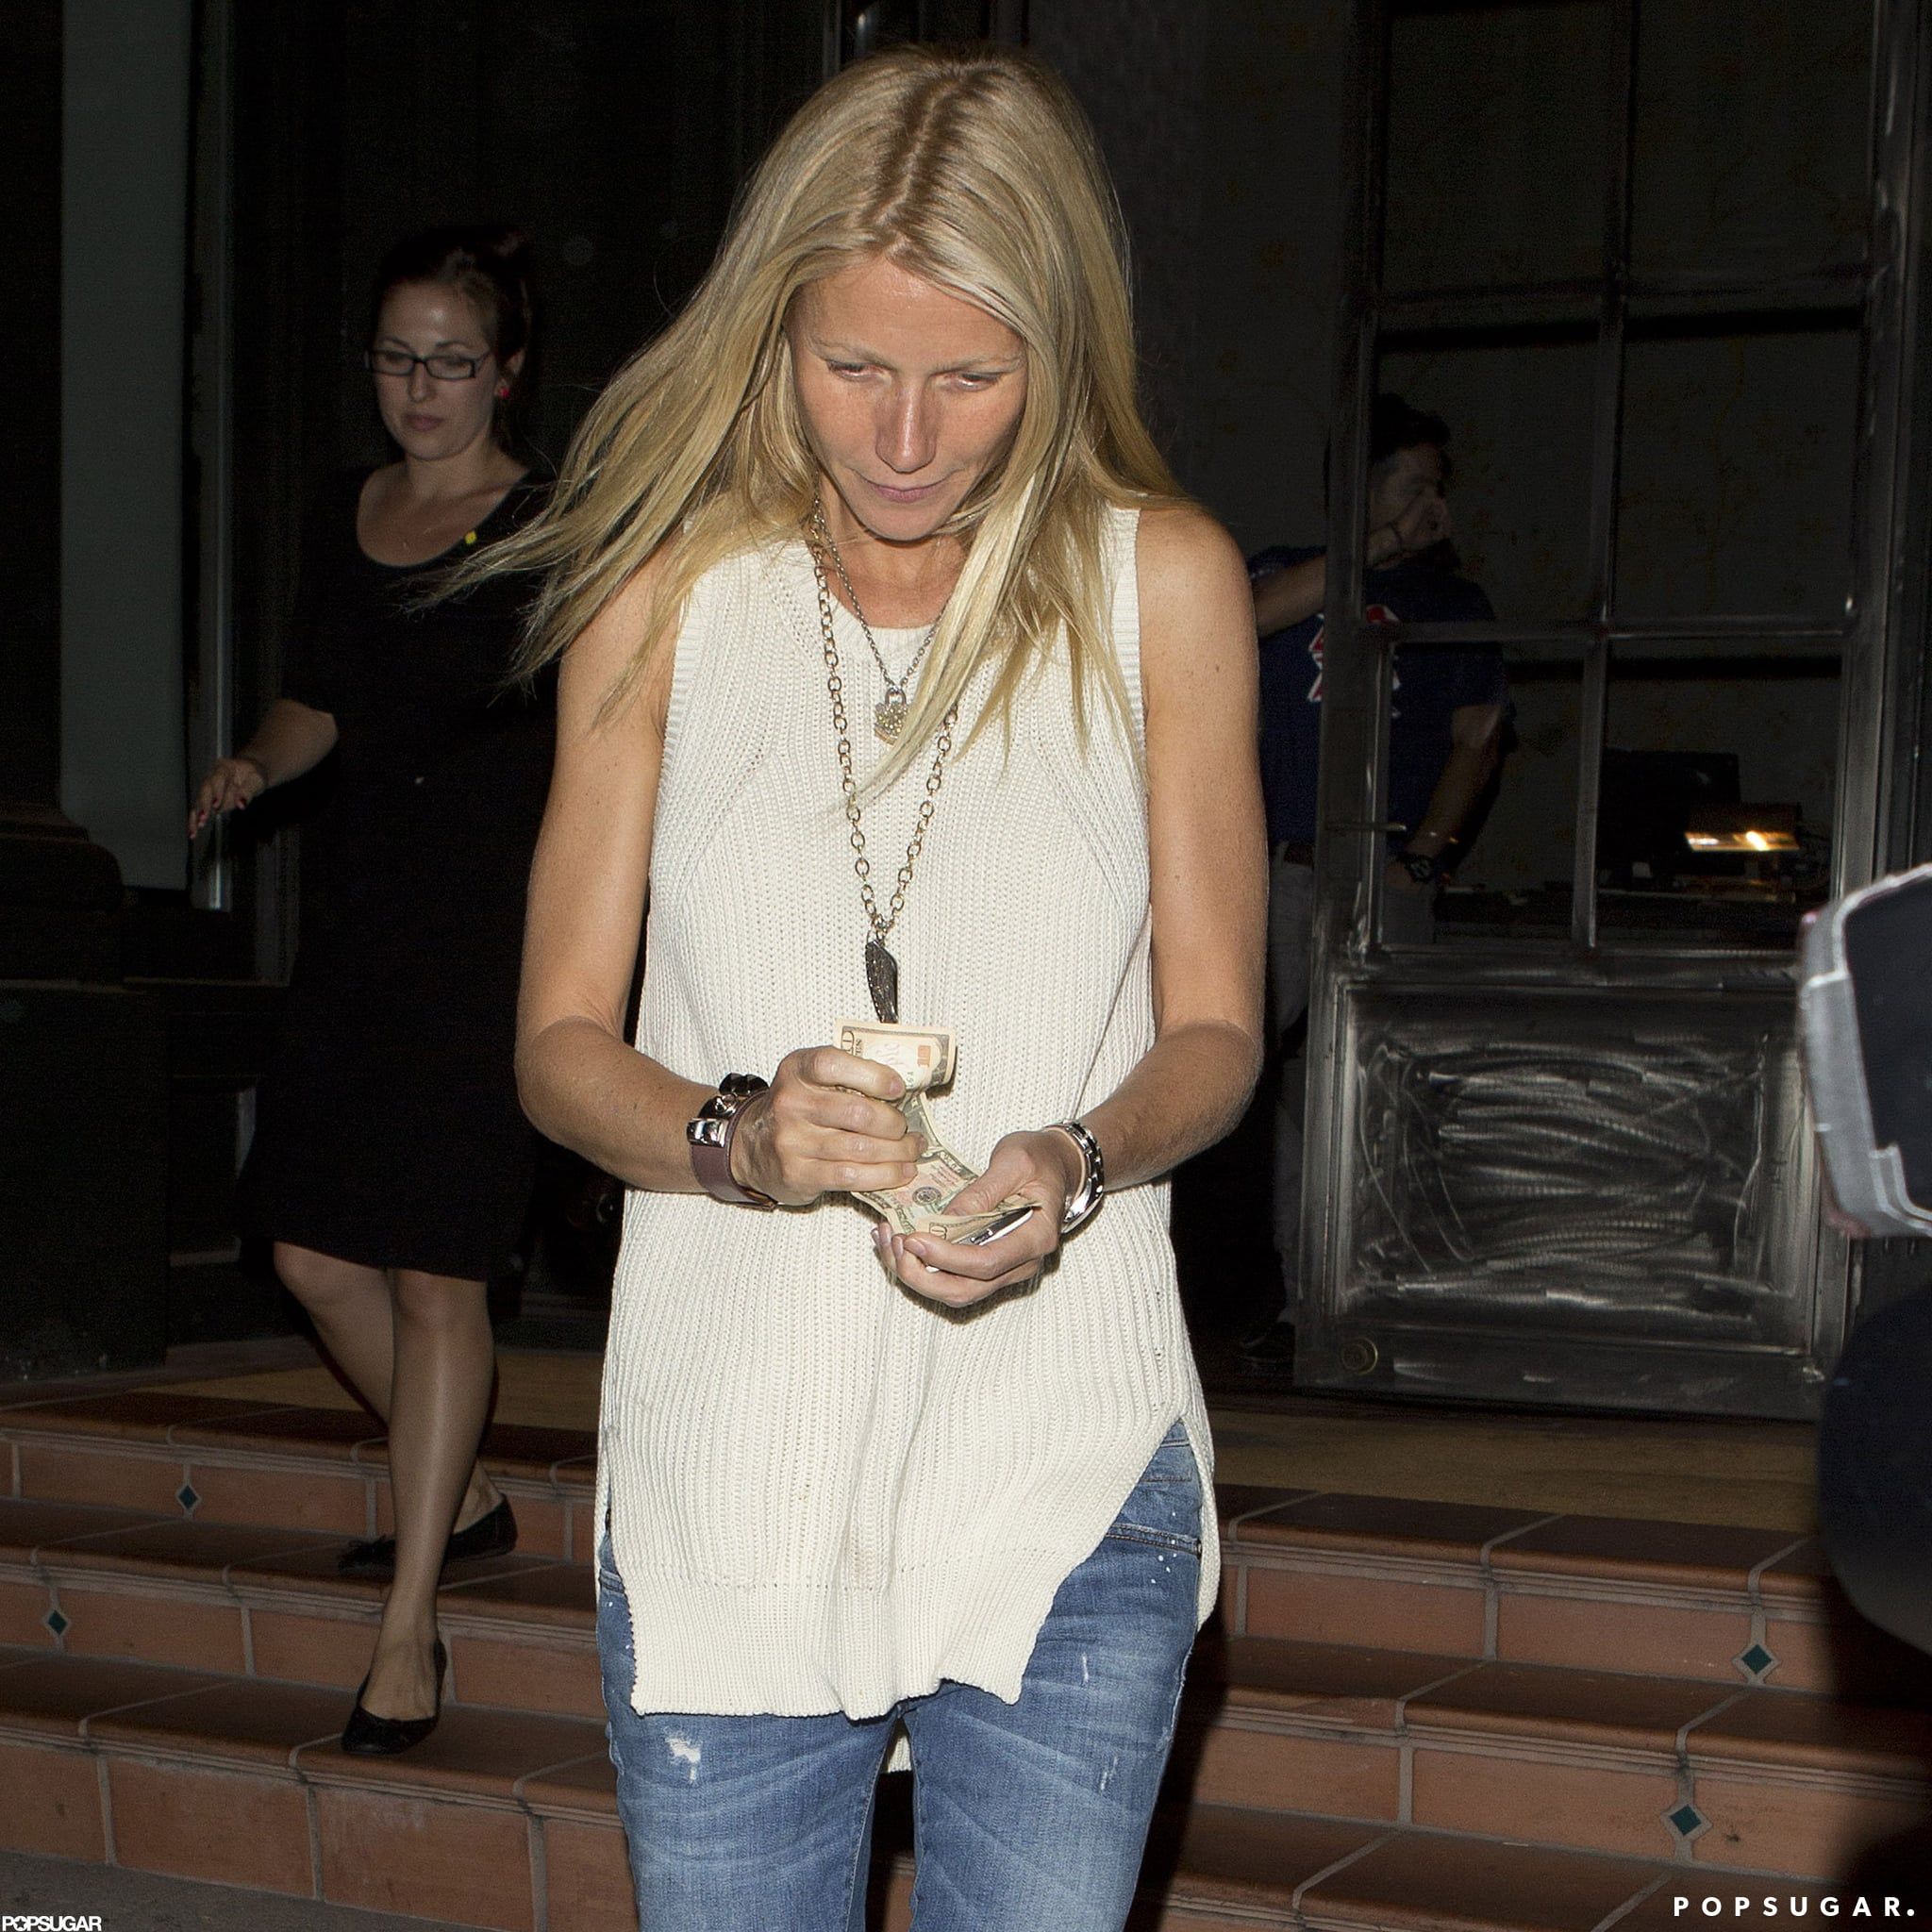 Gwyneth Paltrow had her hair down.